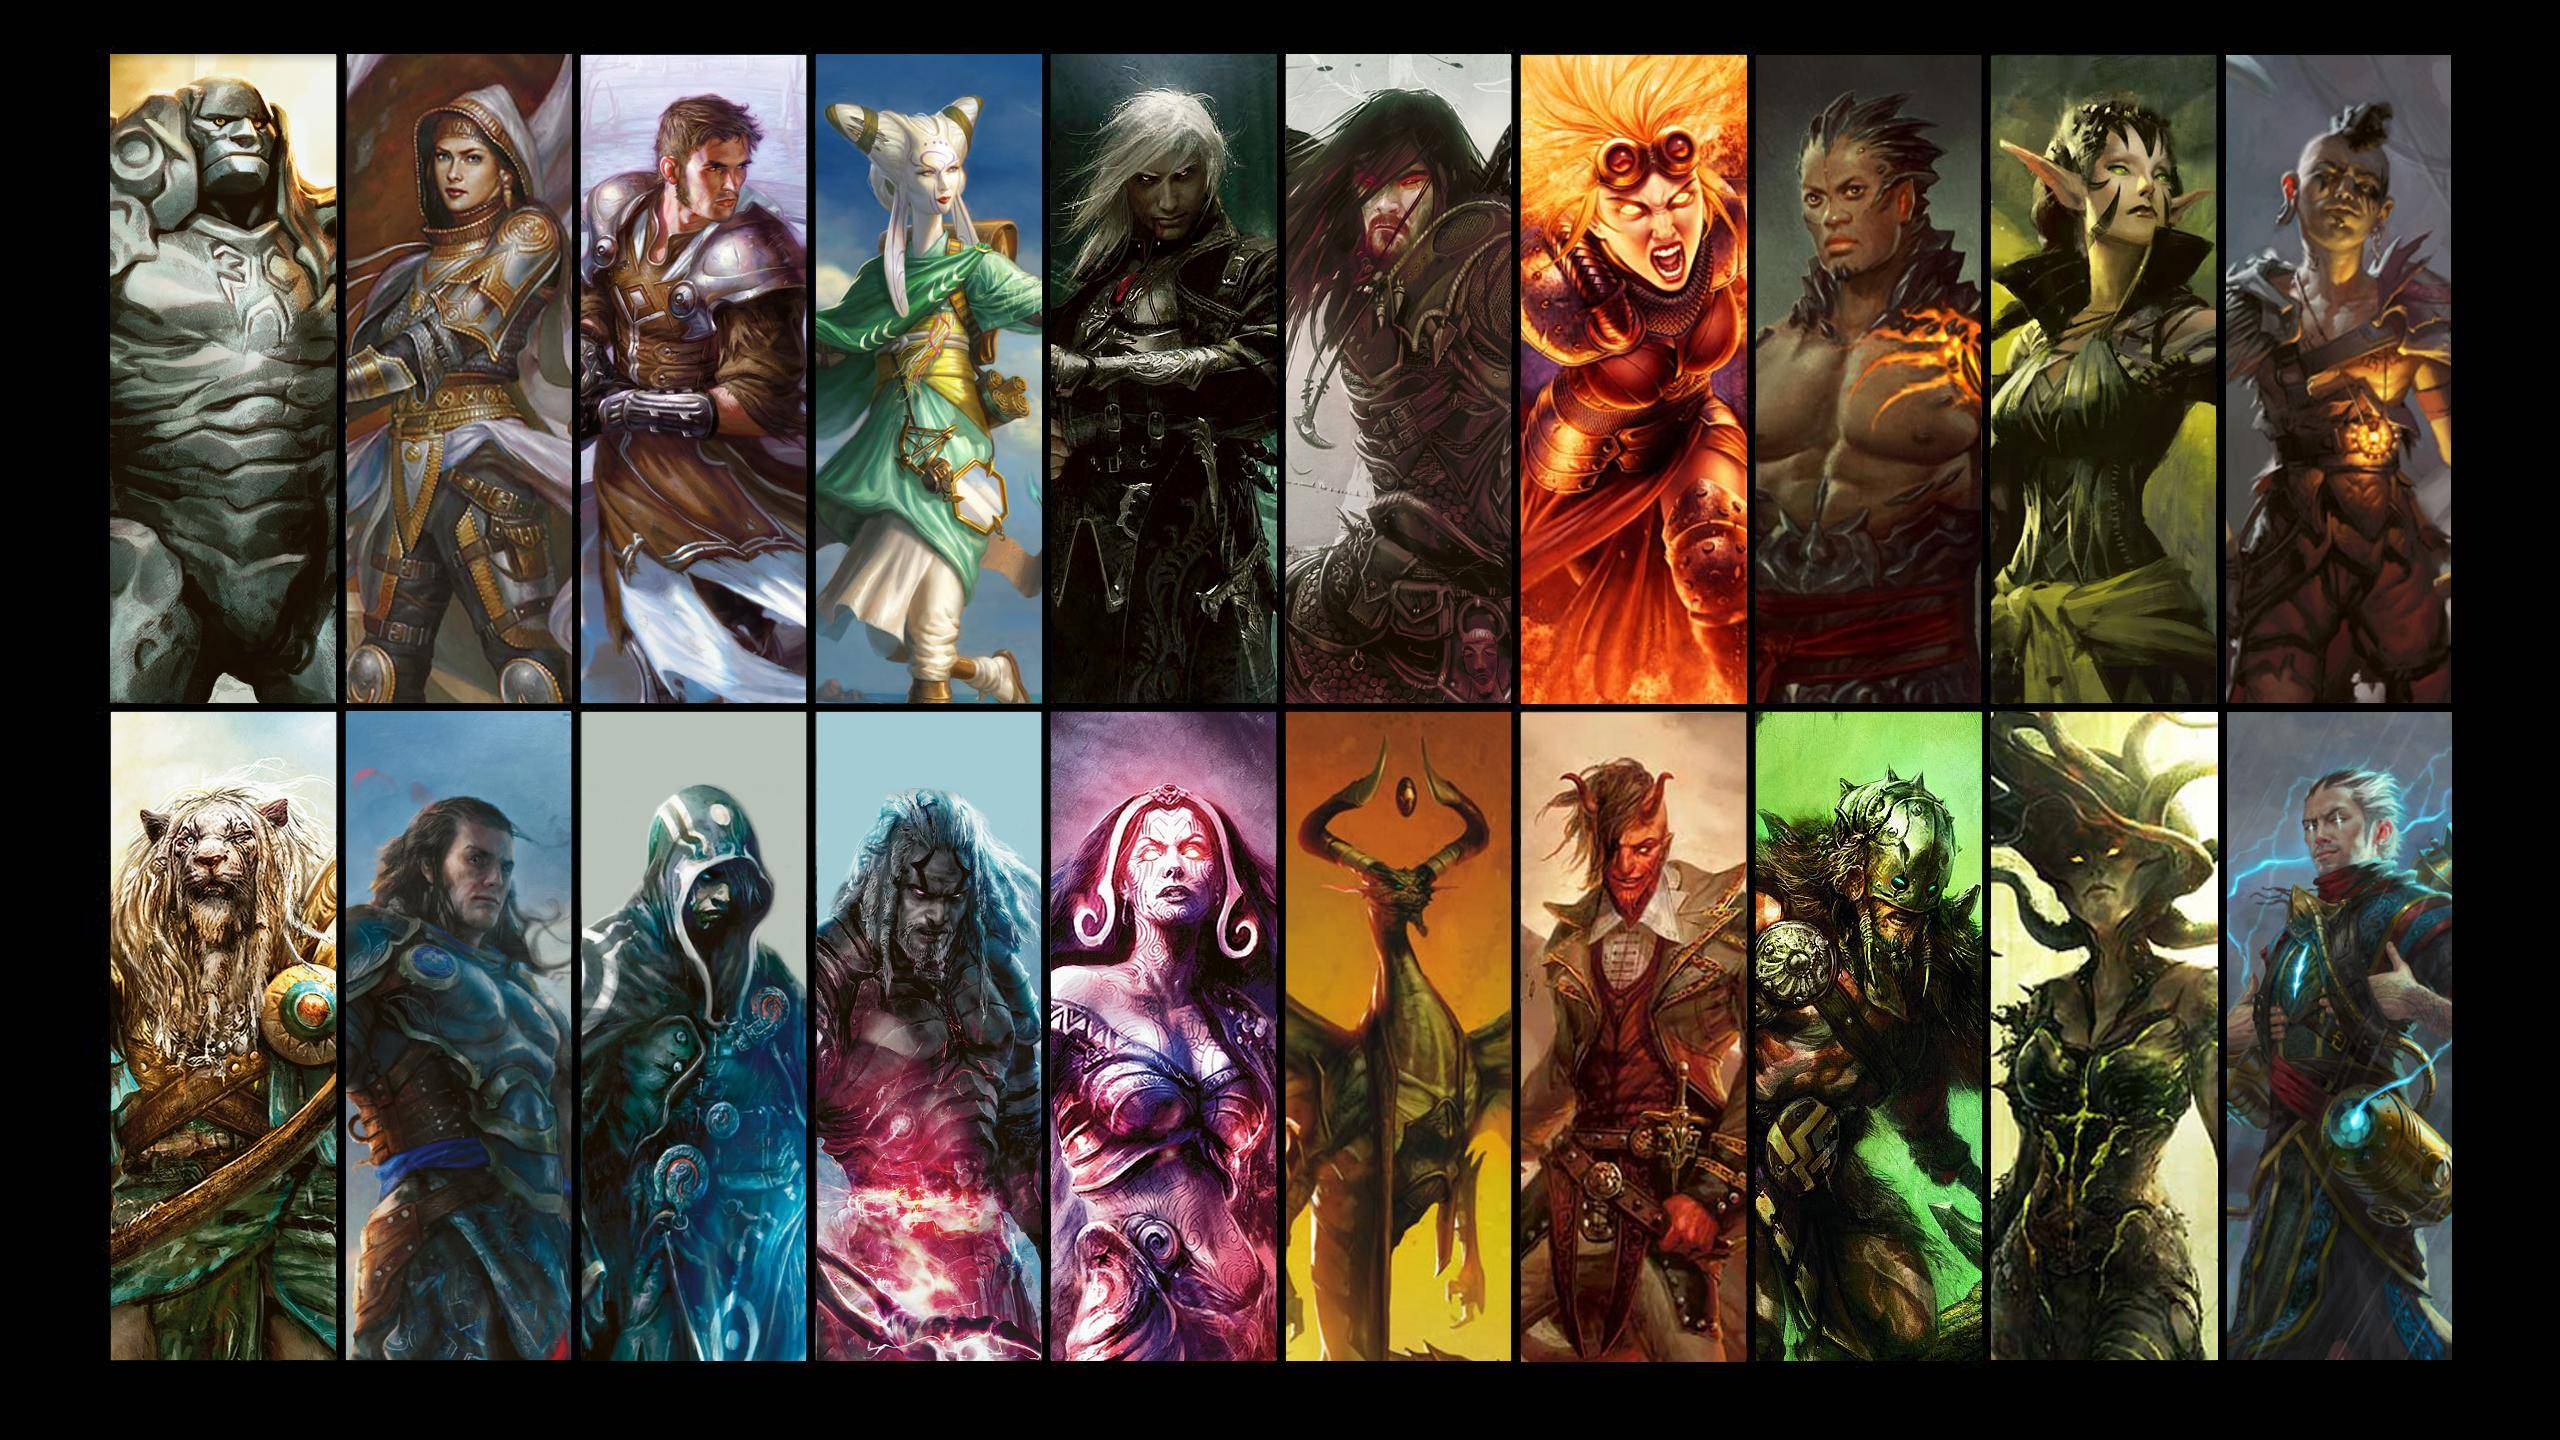 Libros De Magic The Gathering Planeswalker Wallpapers Wallpaper Cave